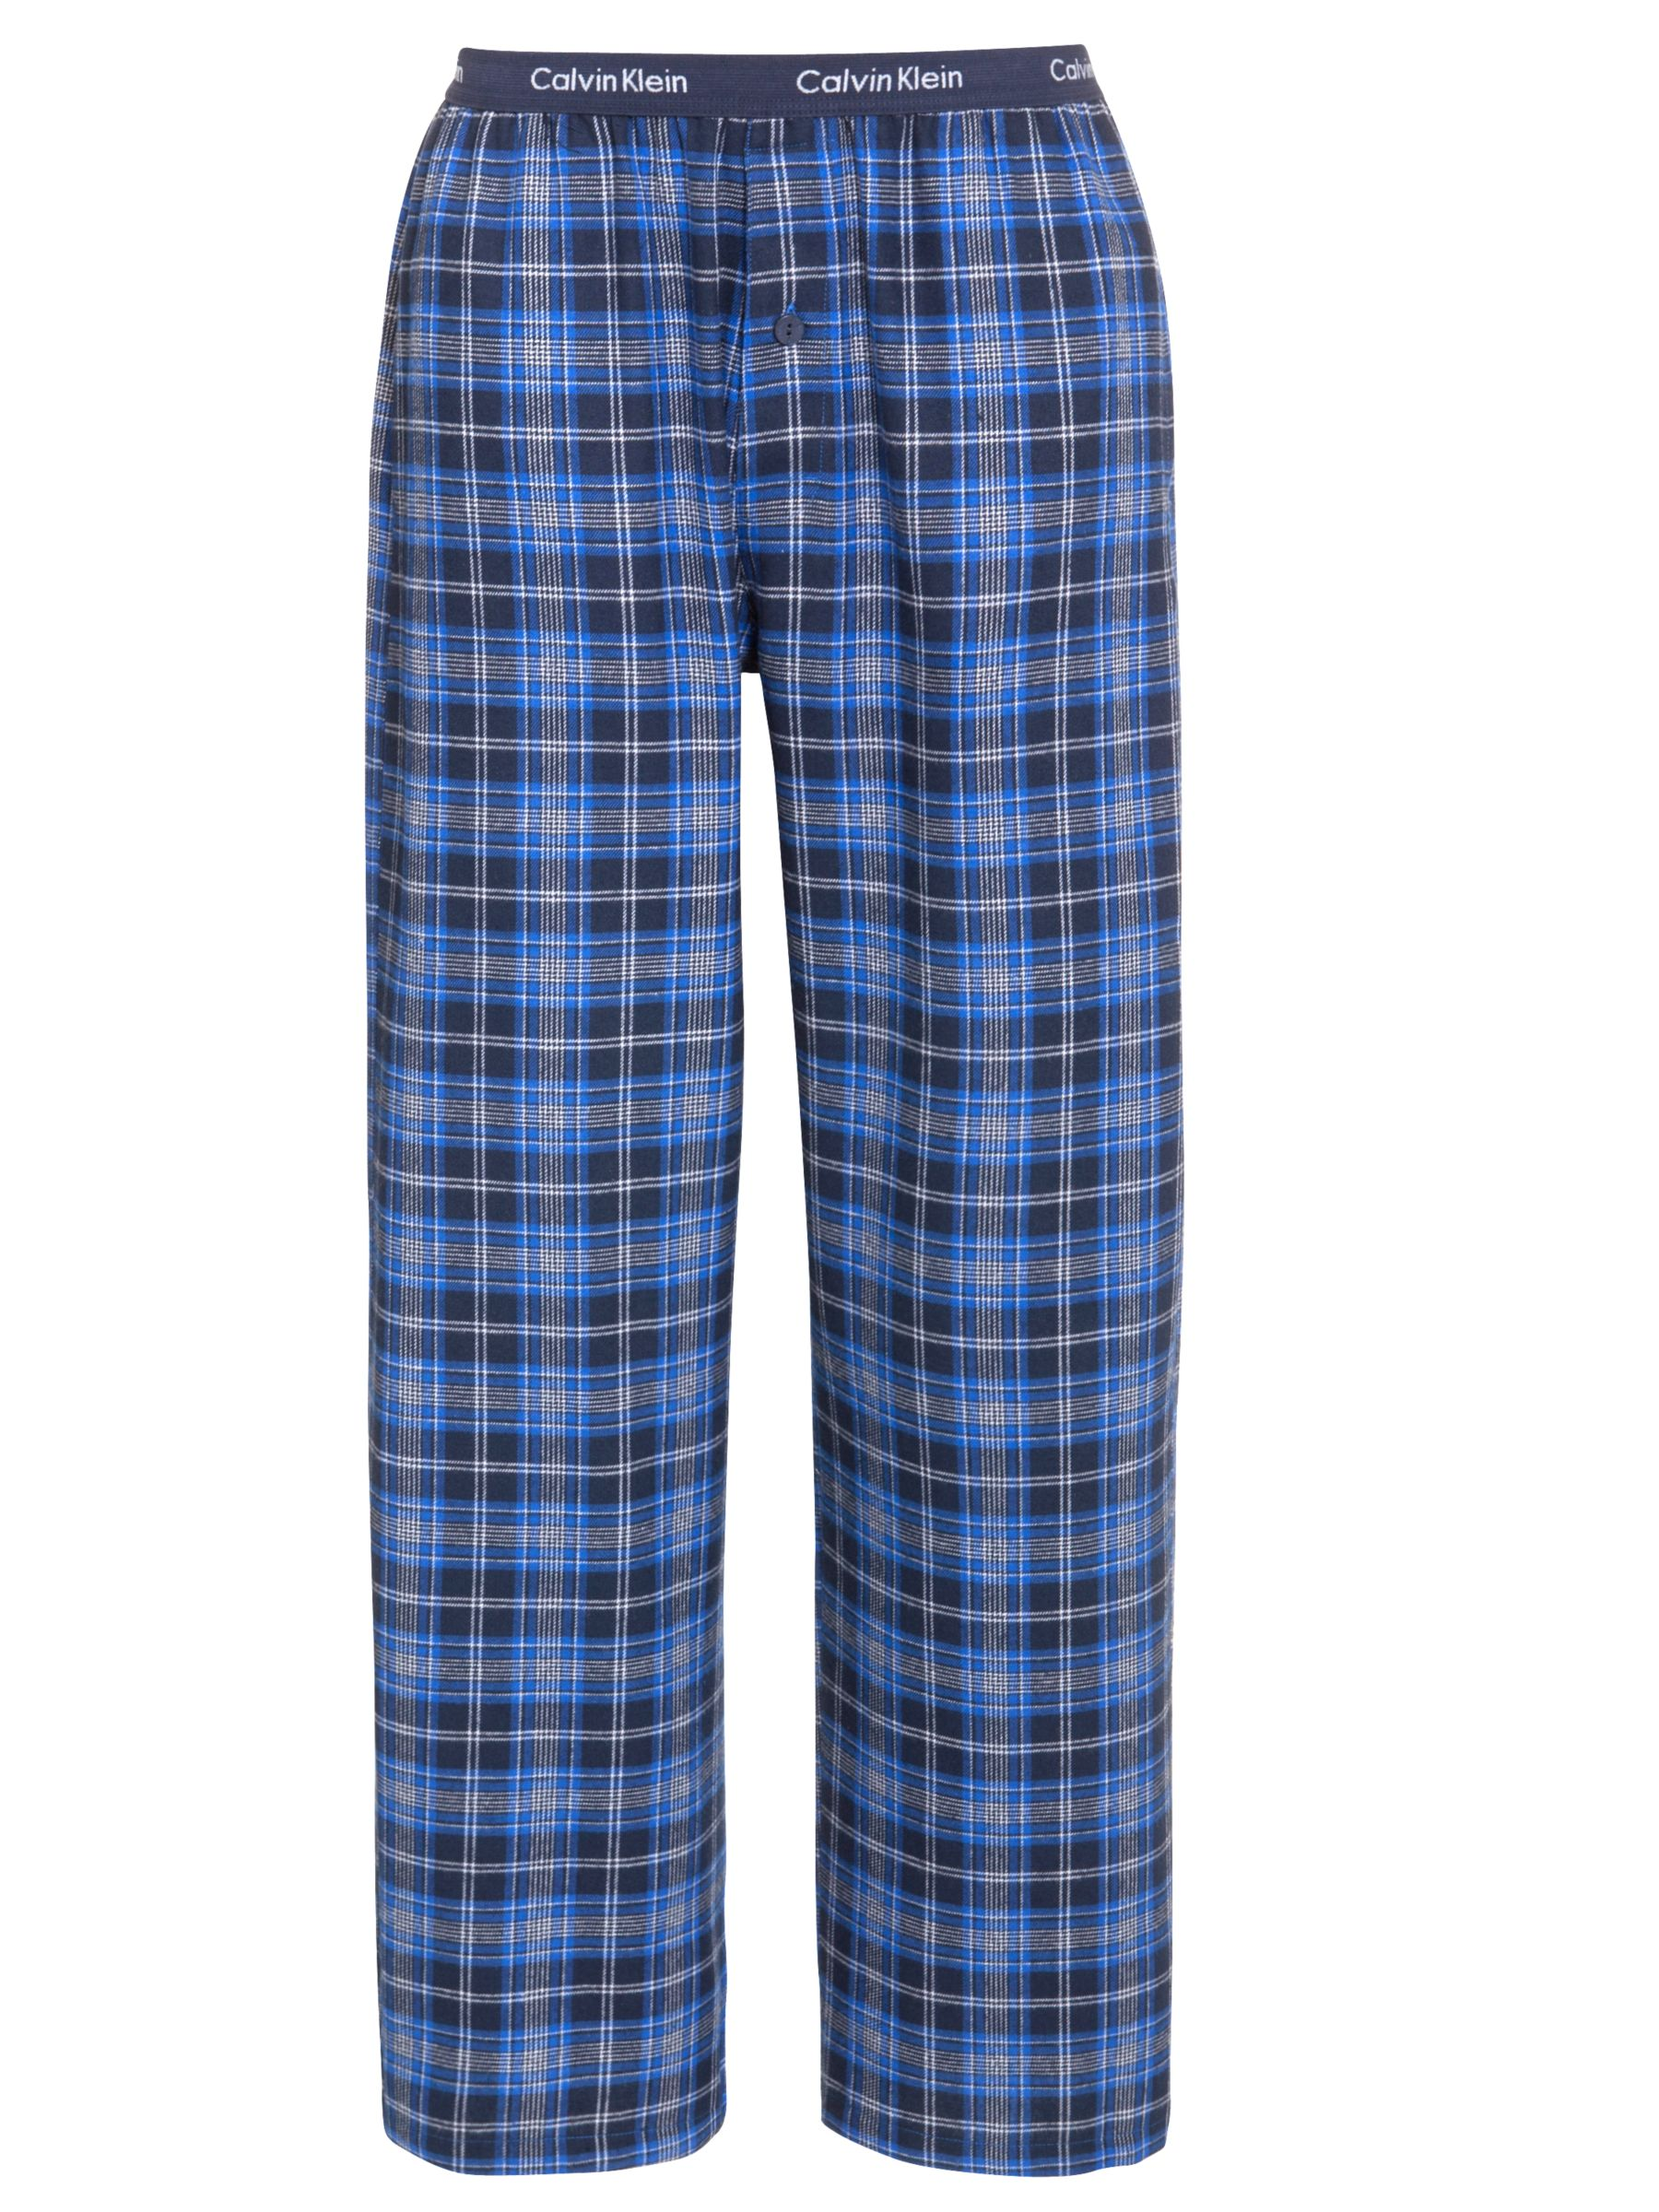 Calvin Klein Woven Traditional Stripe Pyjama Pants, Blue/Grey